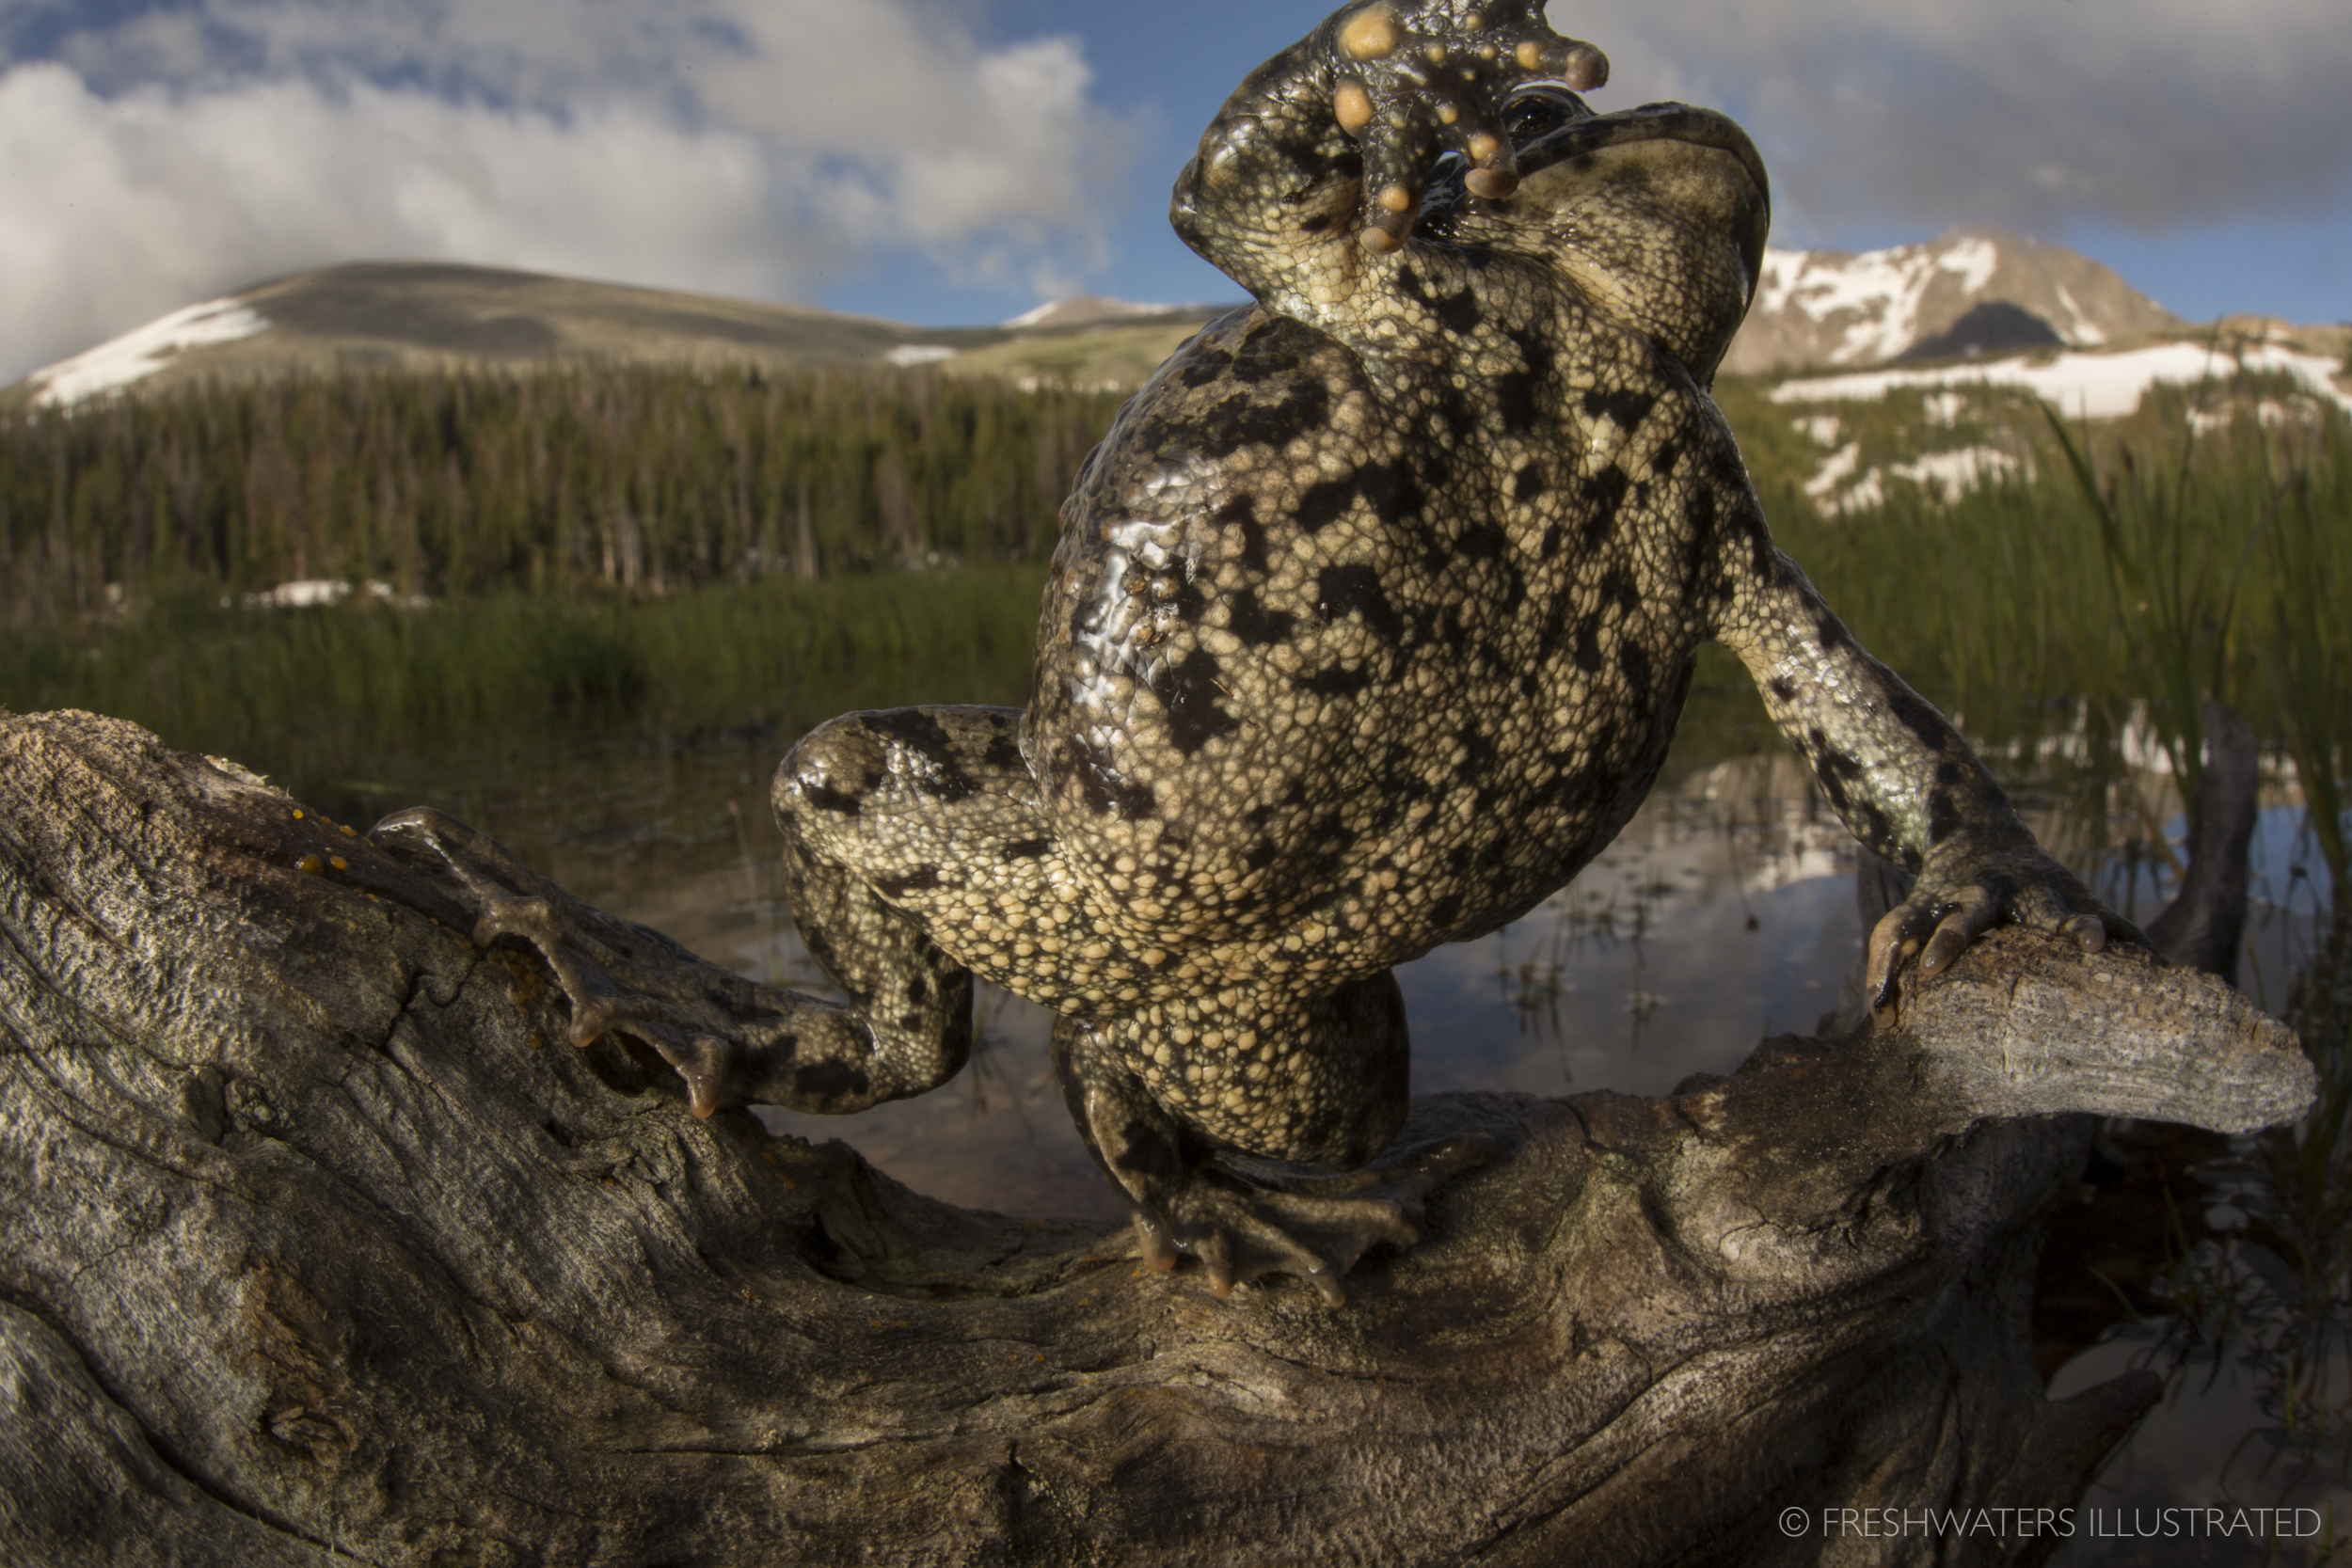 Boreal toad (Anaxyrus boreas) Rocky Mountain National Park, Colorado  www.FreshwatersIllustrated.org